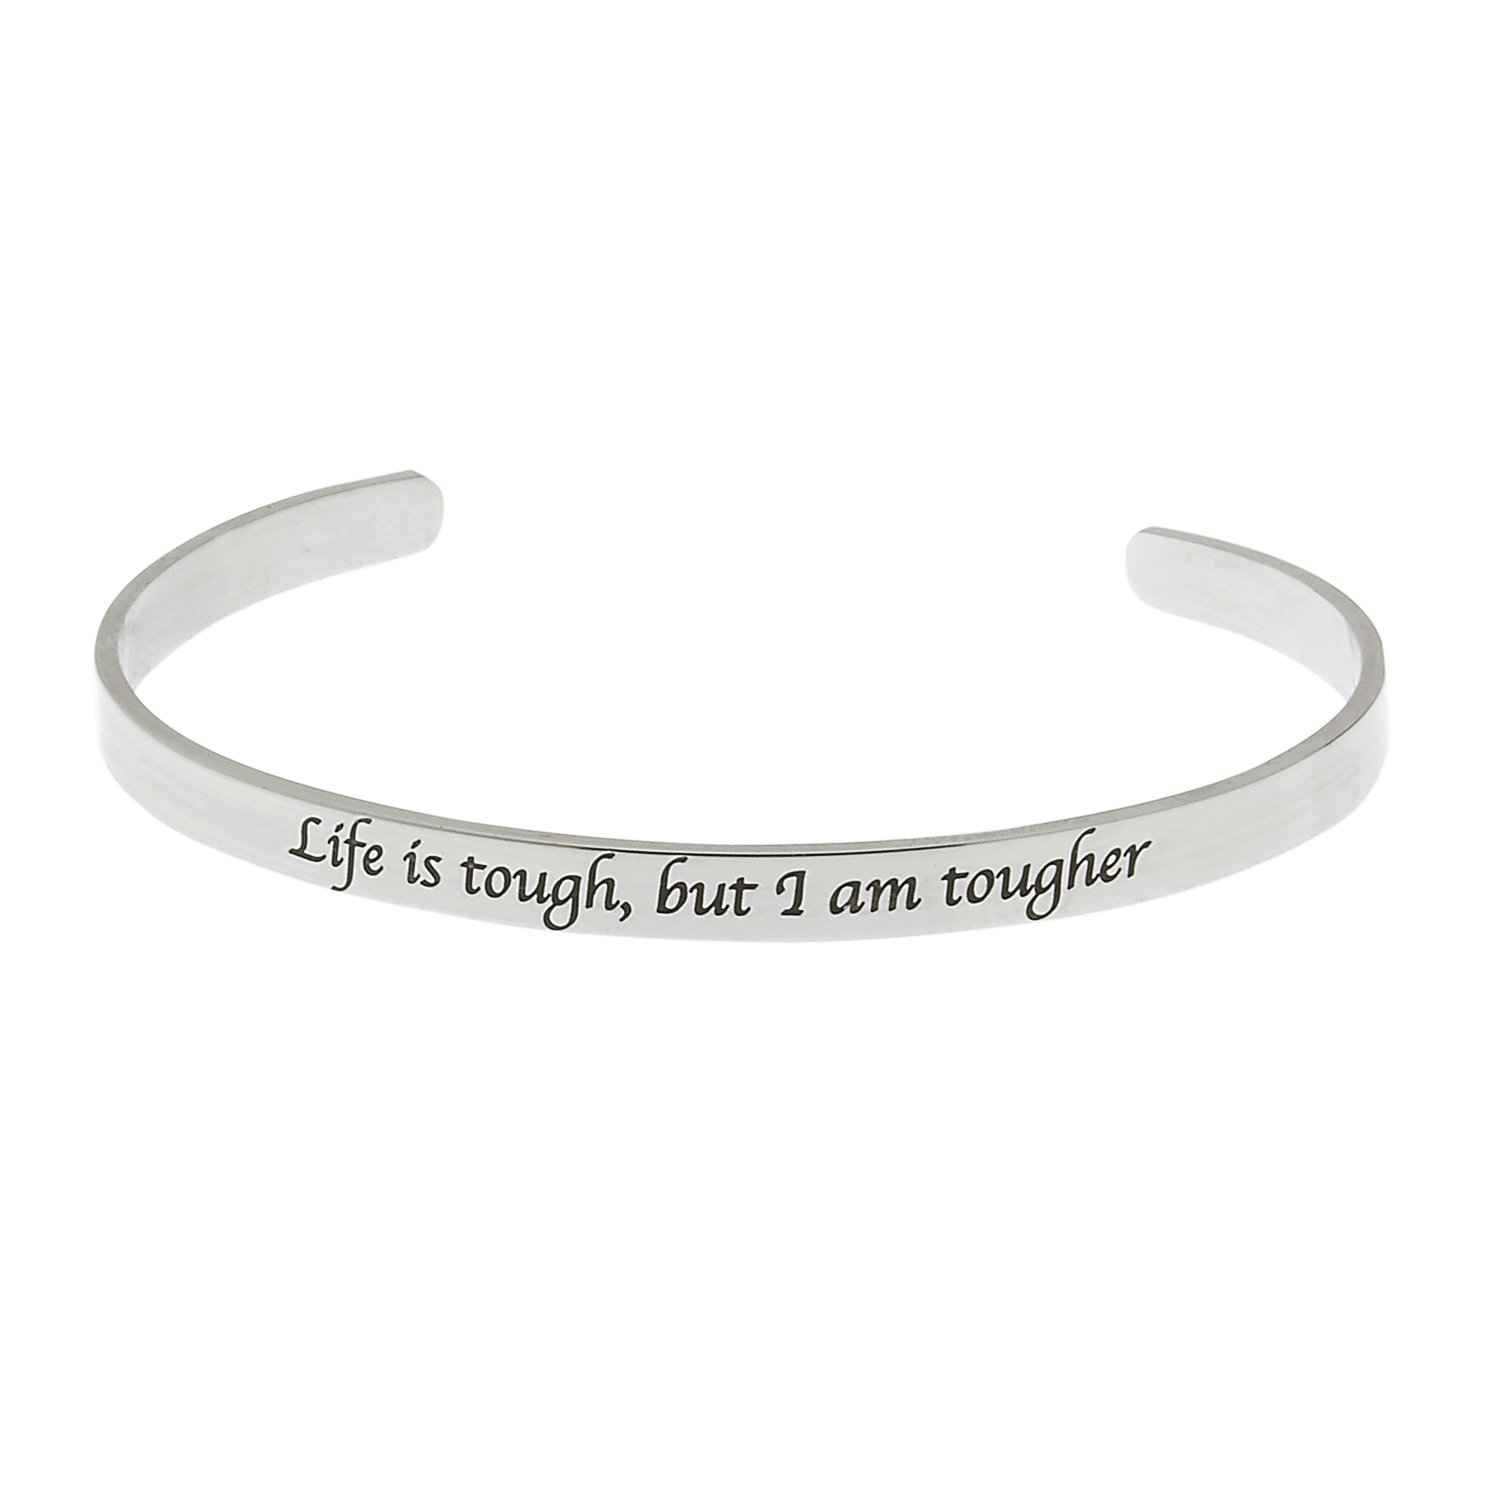 make inspirational bracelet healthy multiple cuff colors choices